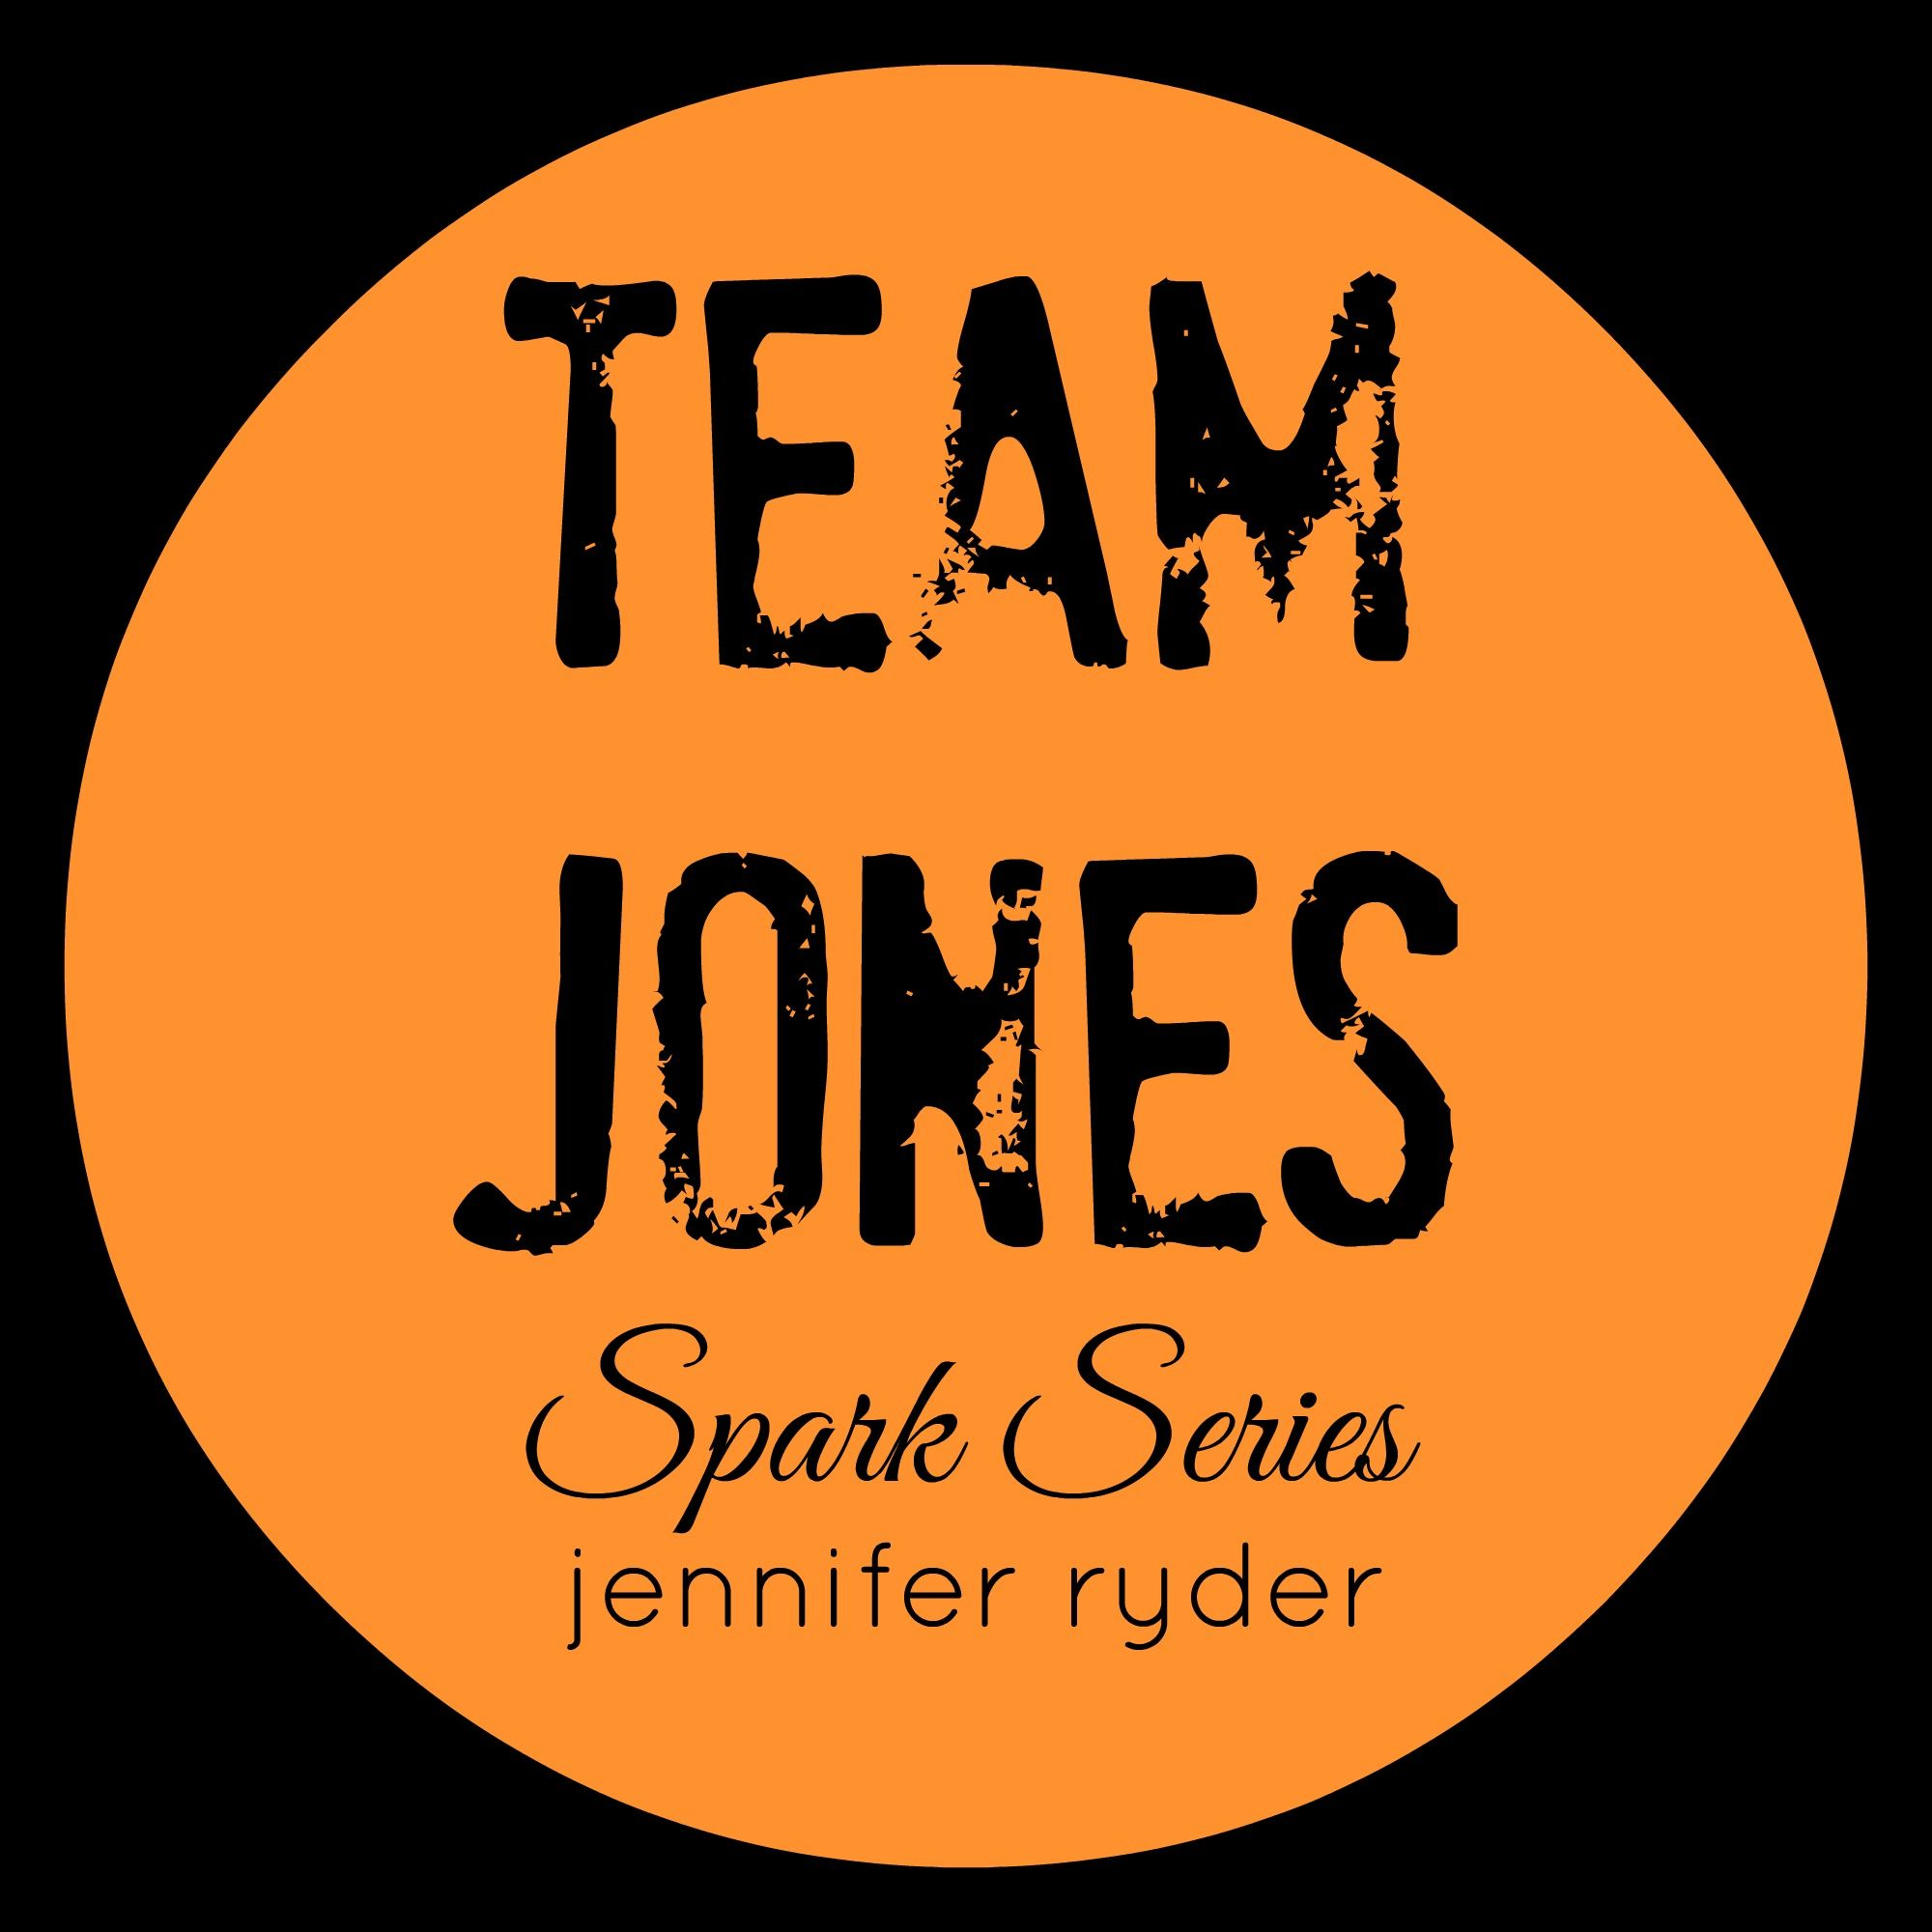 #TeamJones #SparkSeries Strike - Out Now - amzn.to/1waf7to